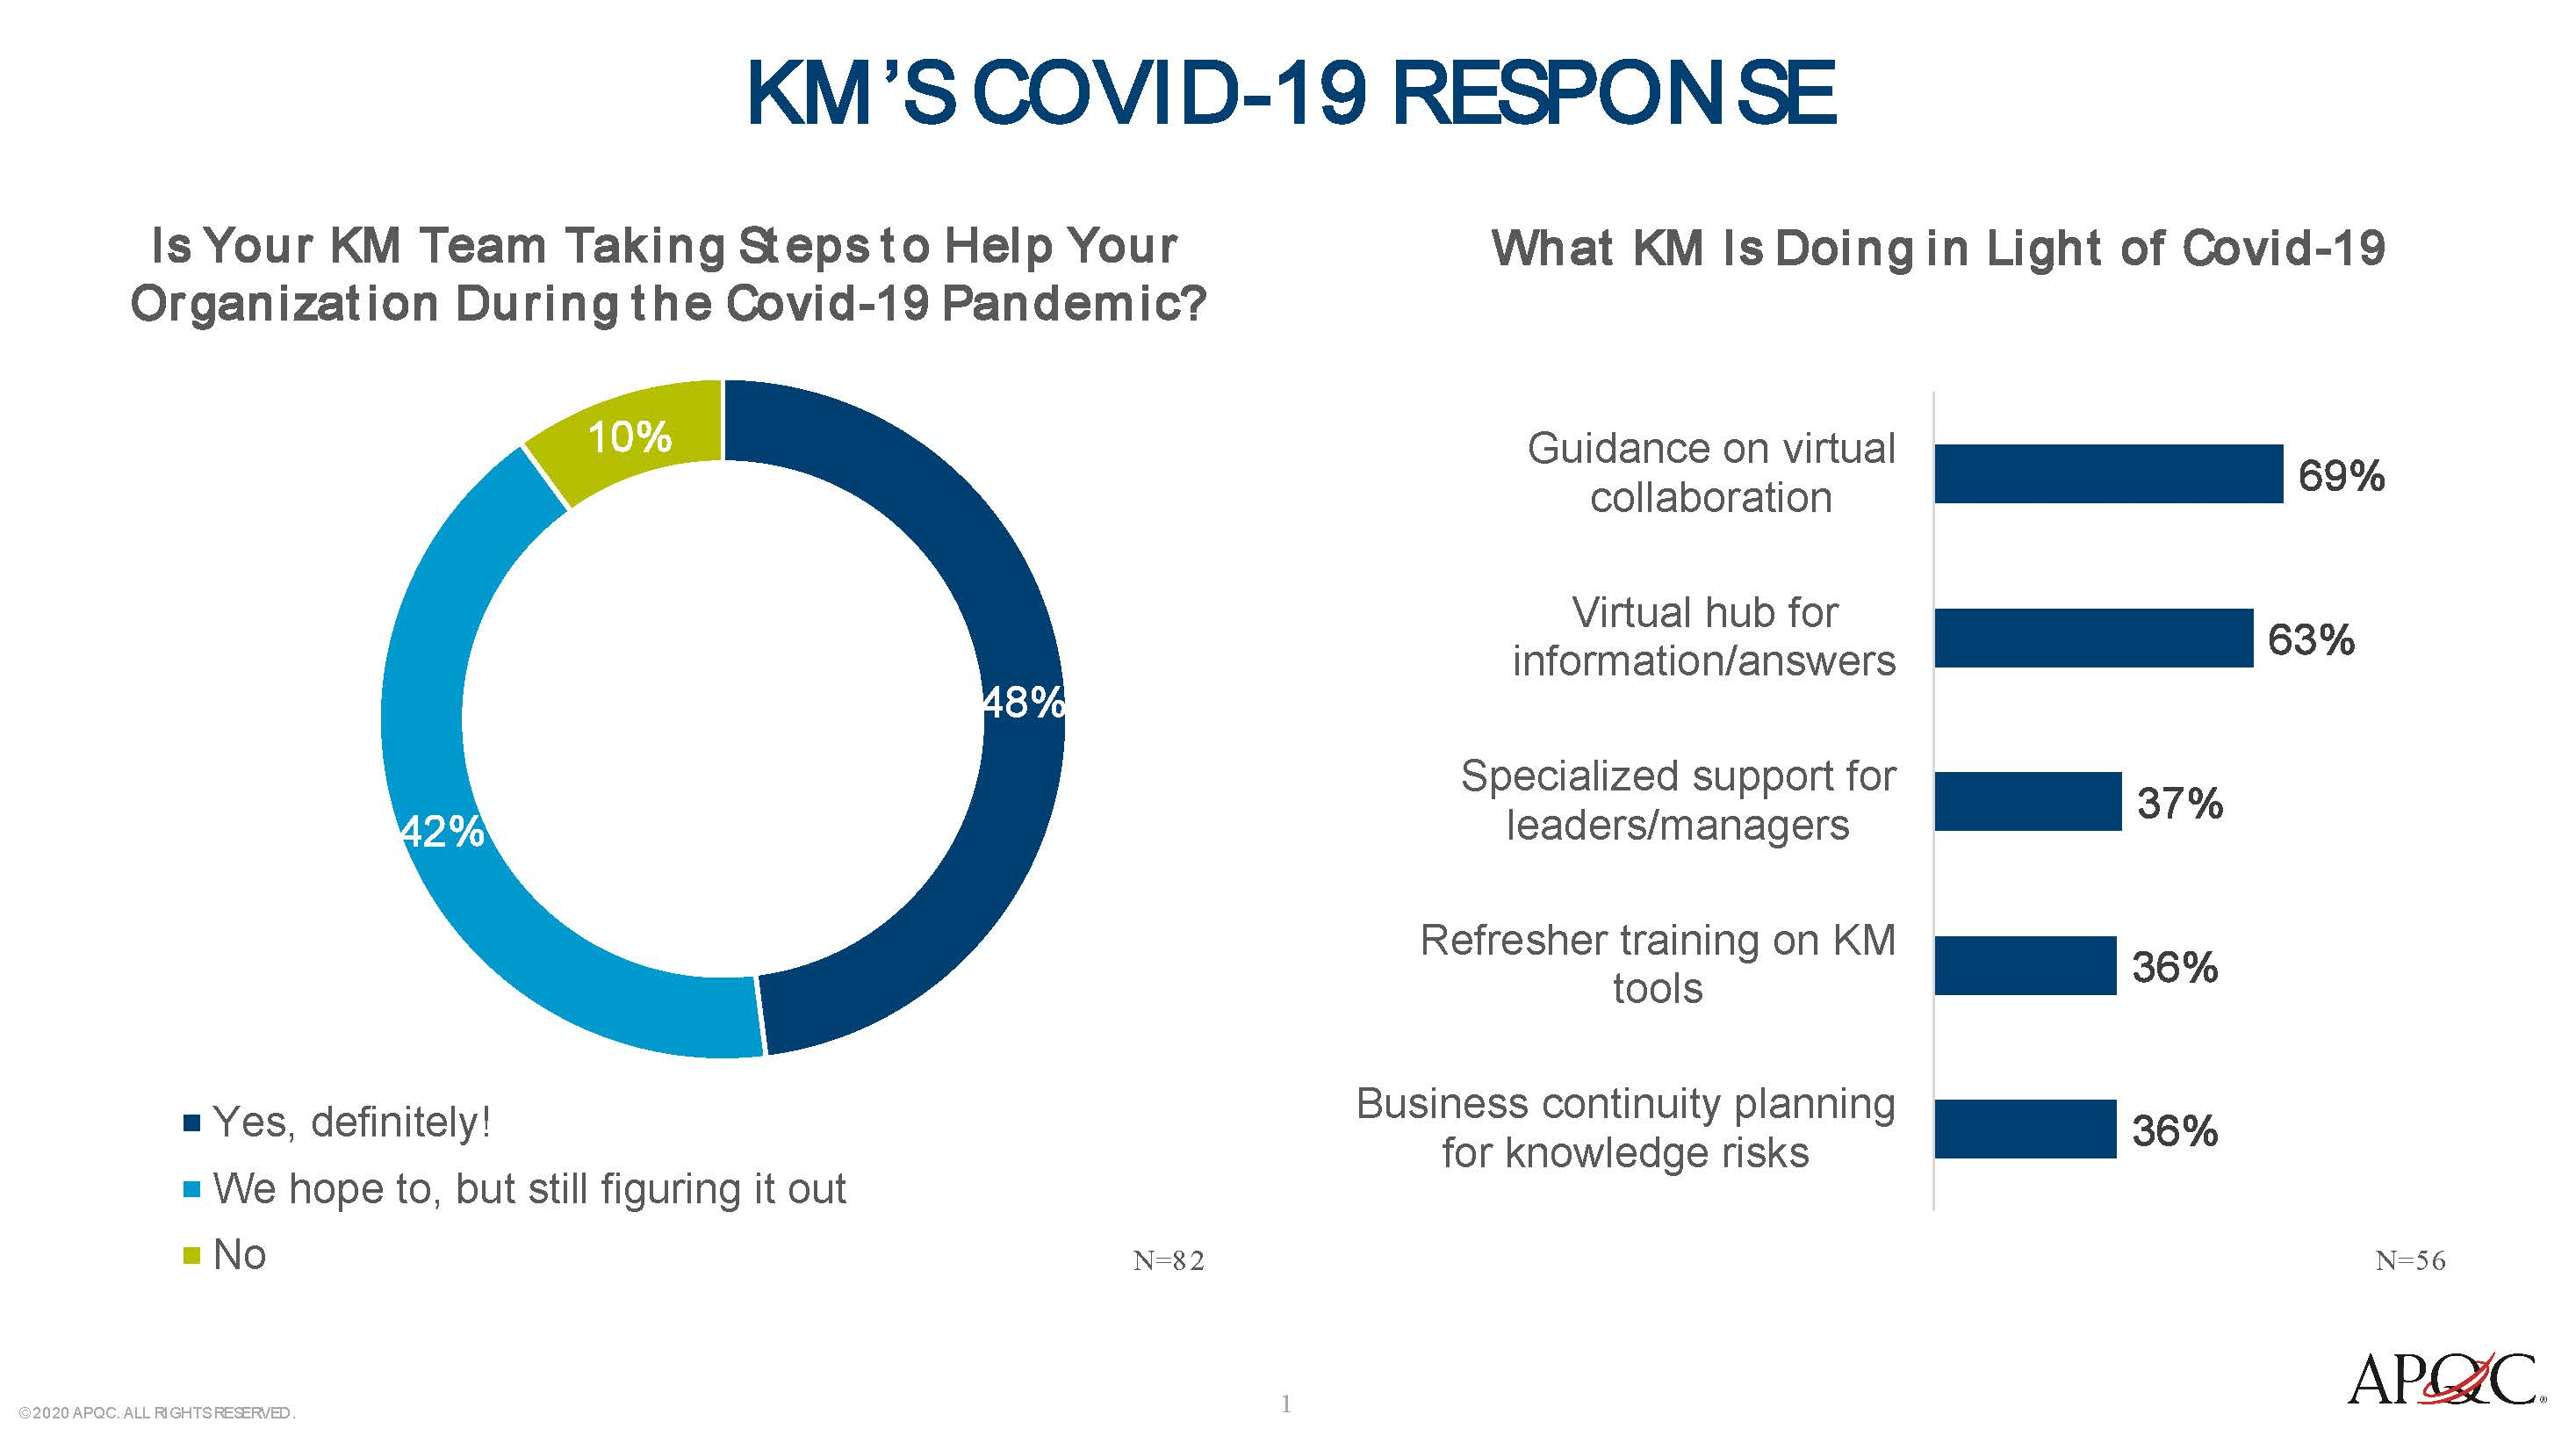 90% of knowledge management teams are responding to Covid-19